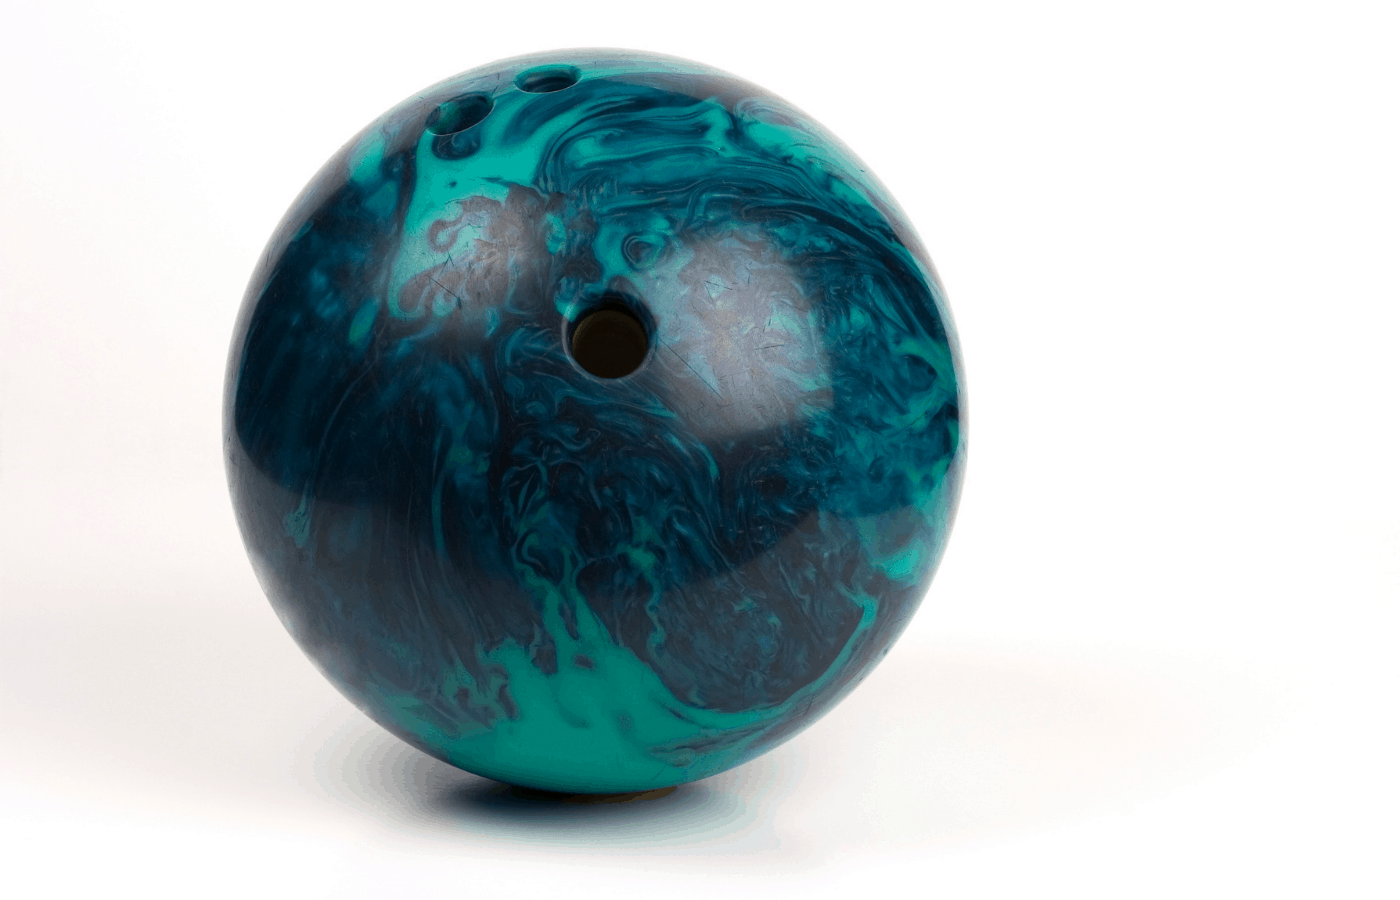 do bowling balls have serial numbers